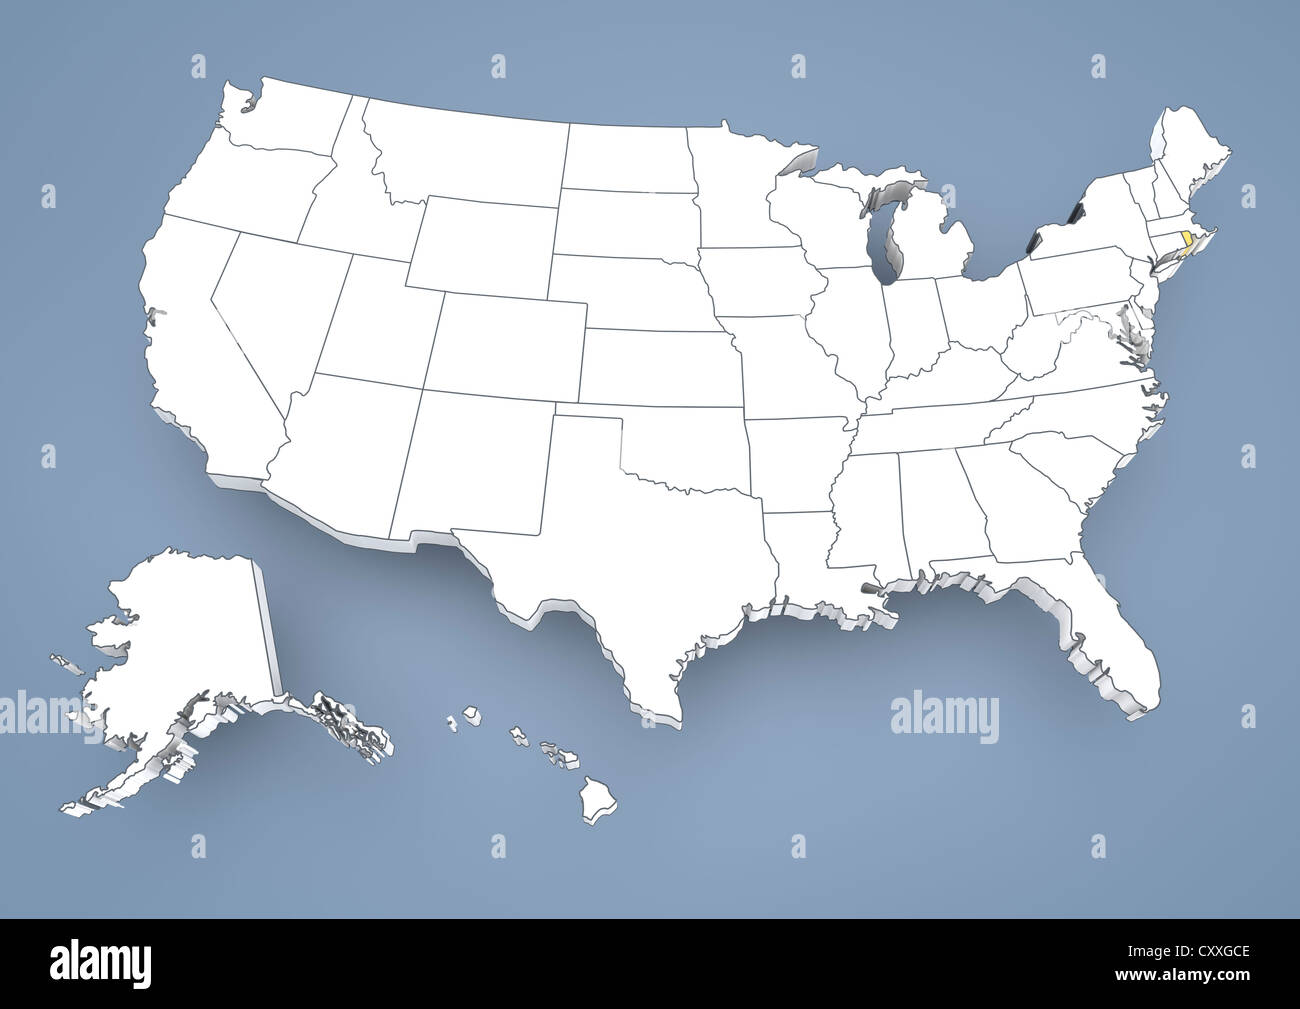 Rhode iceland ri highlighted on a contour map of usa united rhode iceland ri highlighted on a contour map of usa united states of america 3d illustration gumiabroncs Choice Image